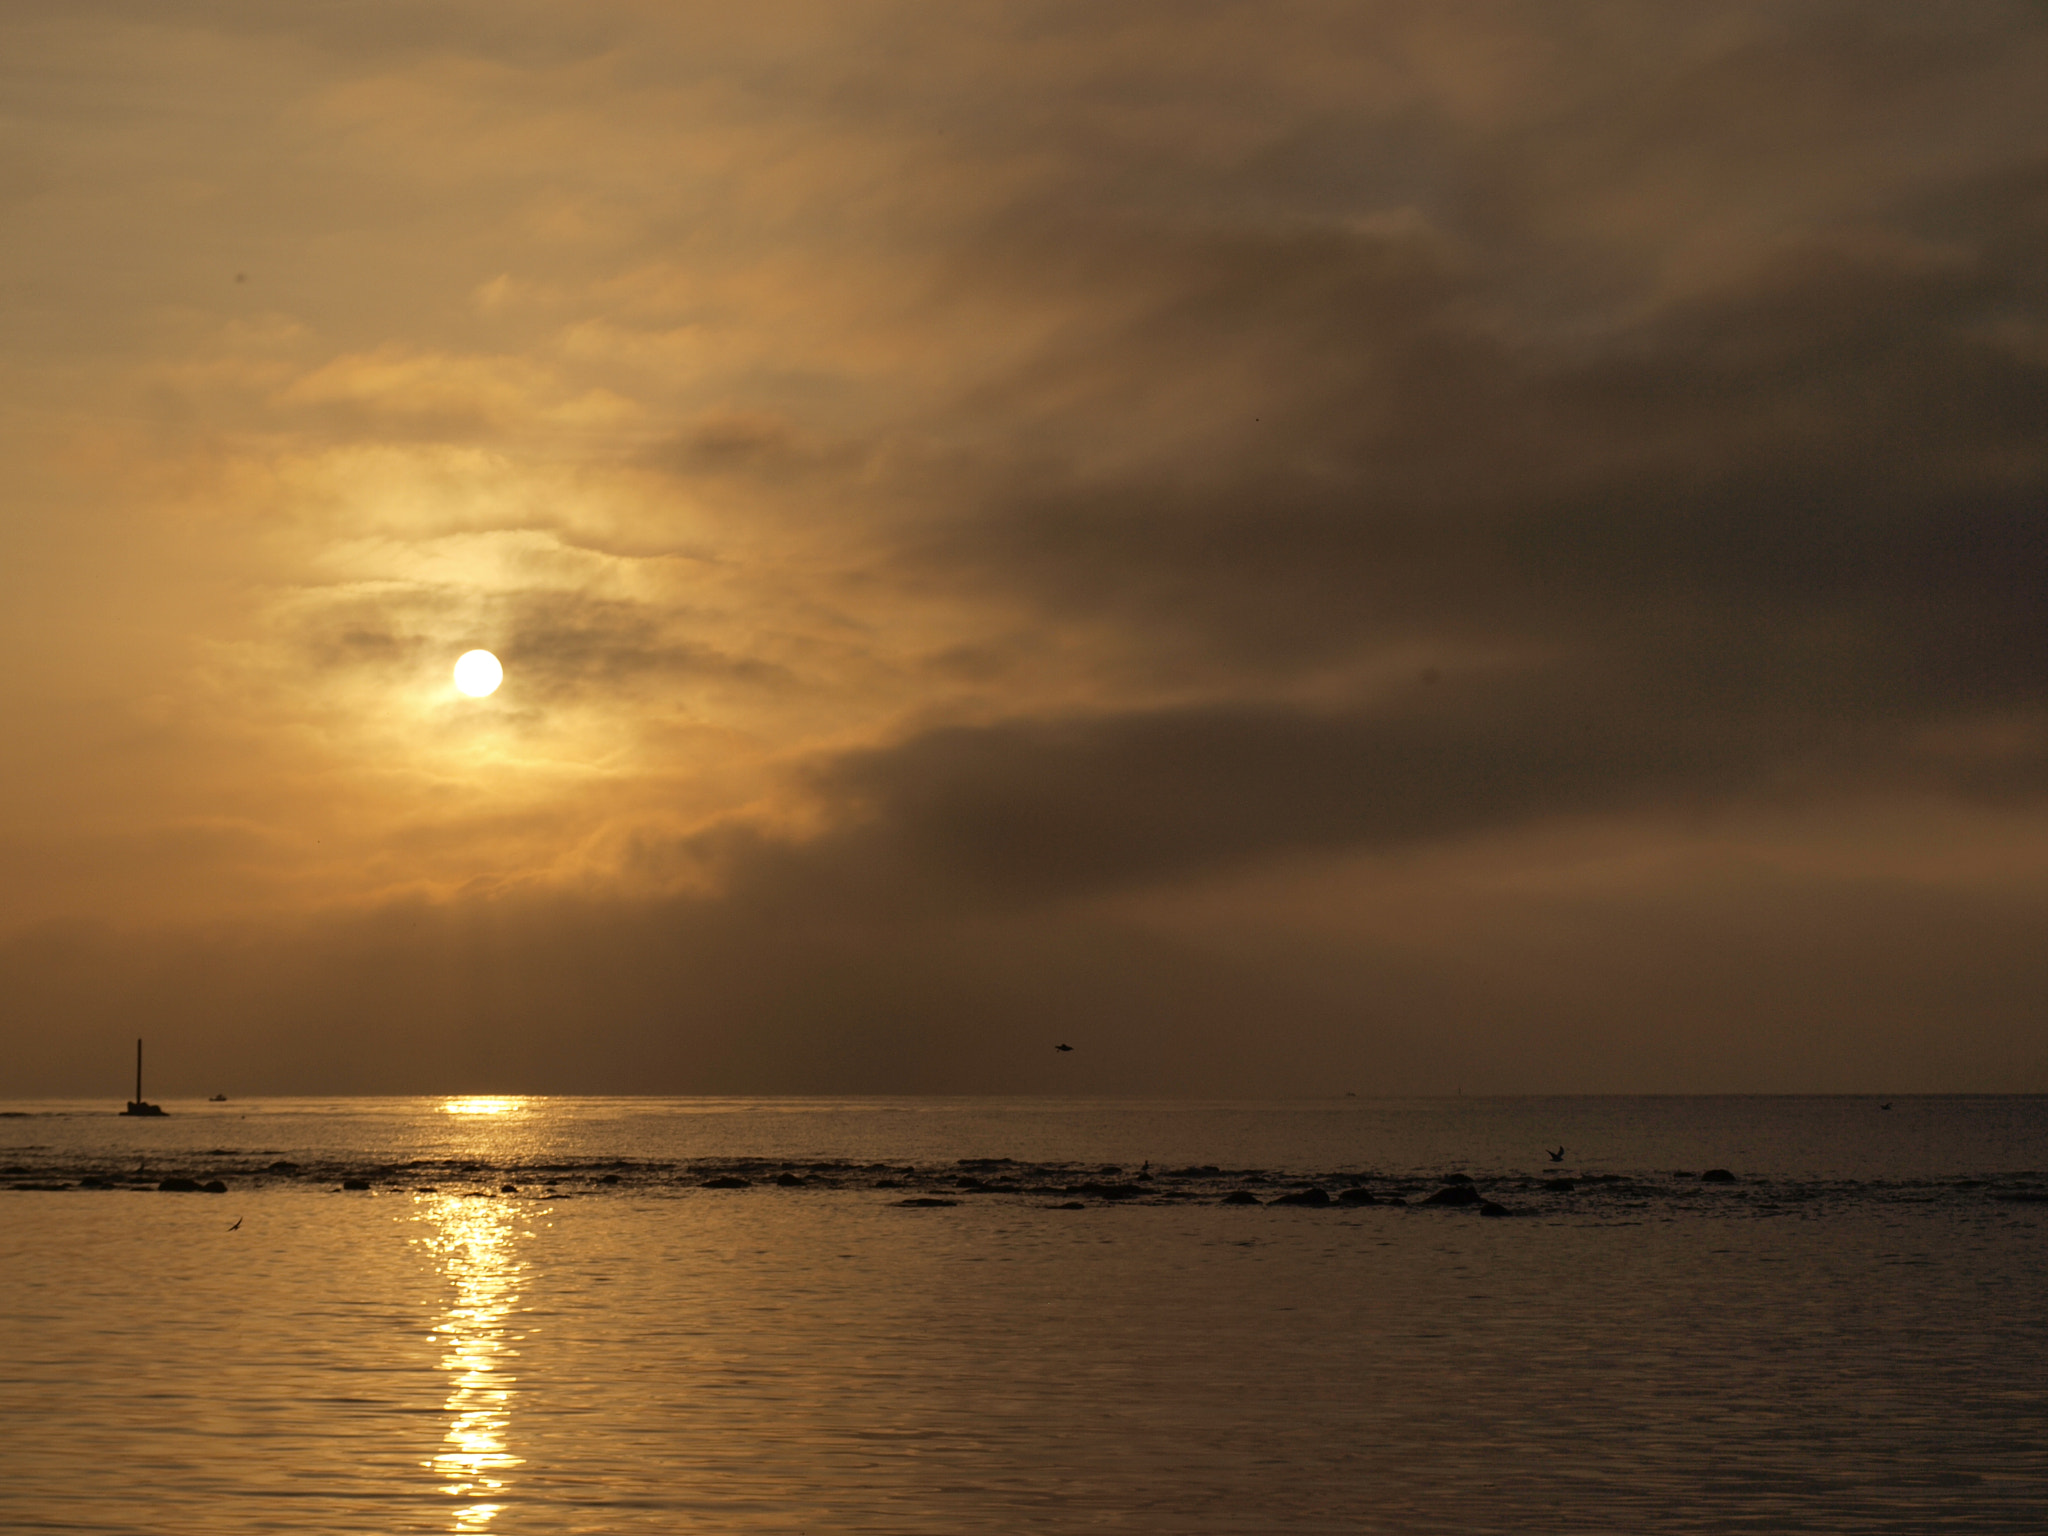 Photograph first sun of the year by rumiko nishi on 500px